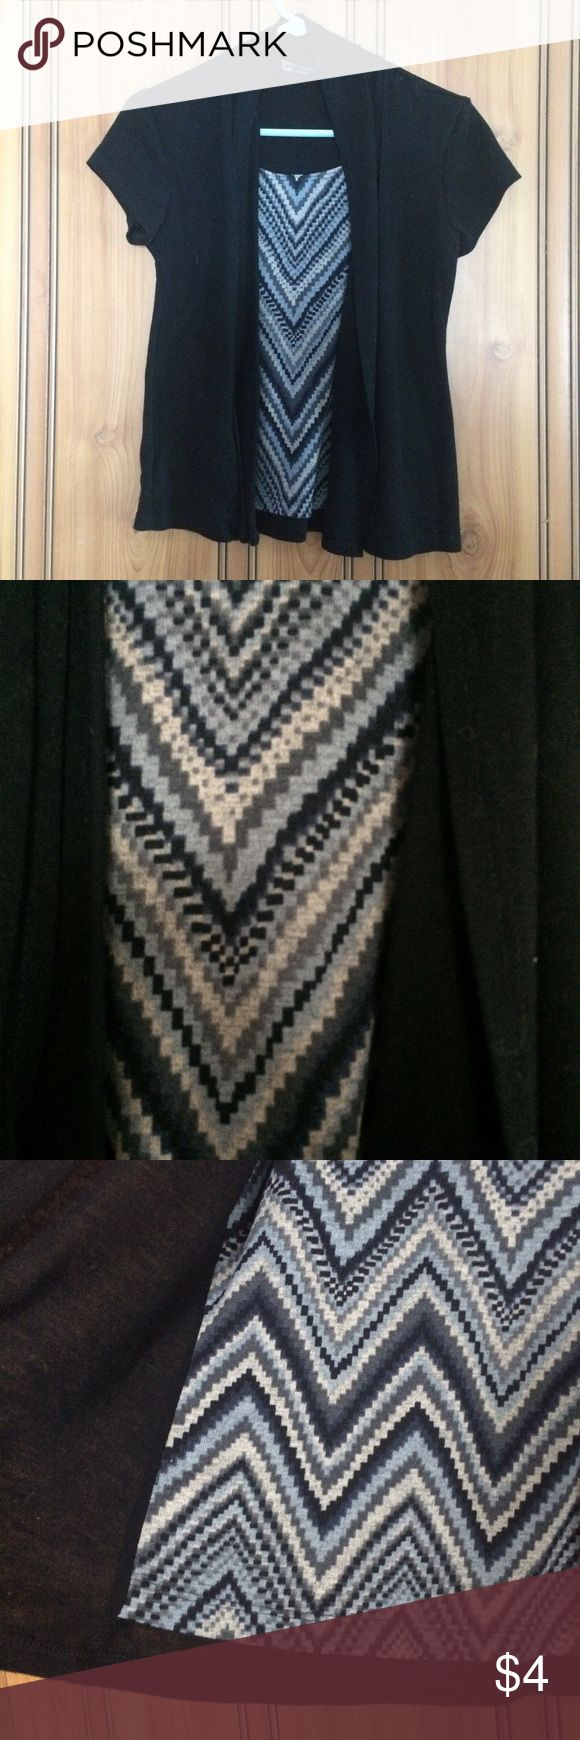 Chevron Top Black blue and tan colors. Dress top. Black cardigan attached. Size tag is cut off. Size XS. Tops